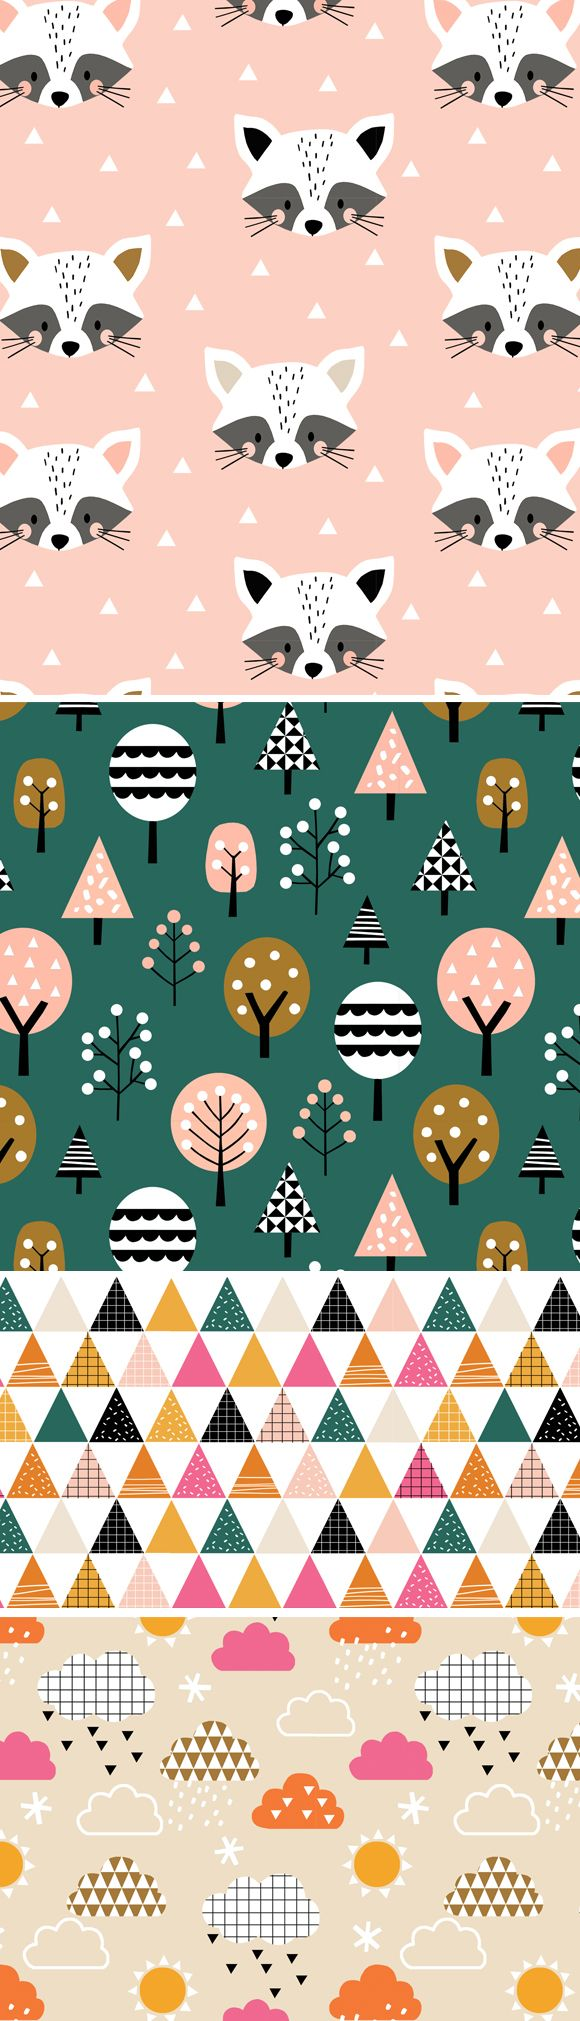 wendy kendall designs – freelance surface pattern designer » geo forest racoon #surfacepatterndesign